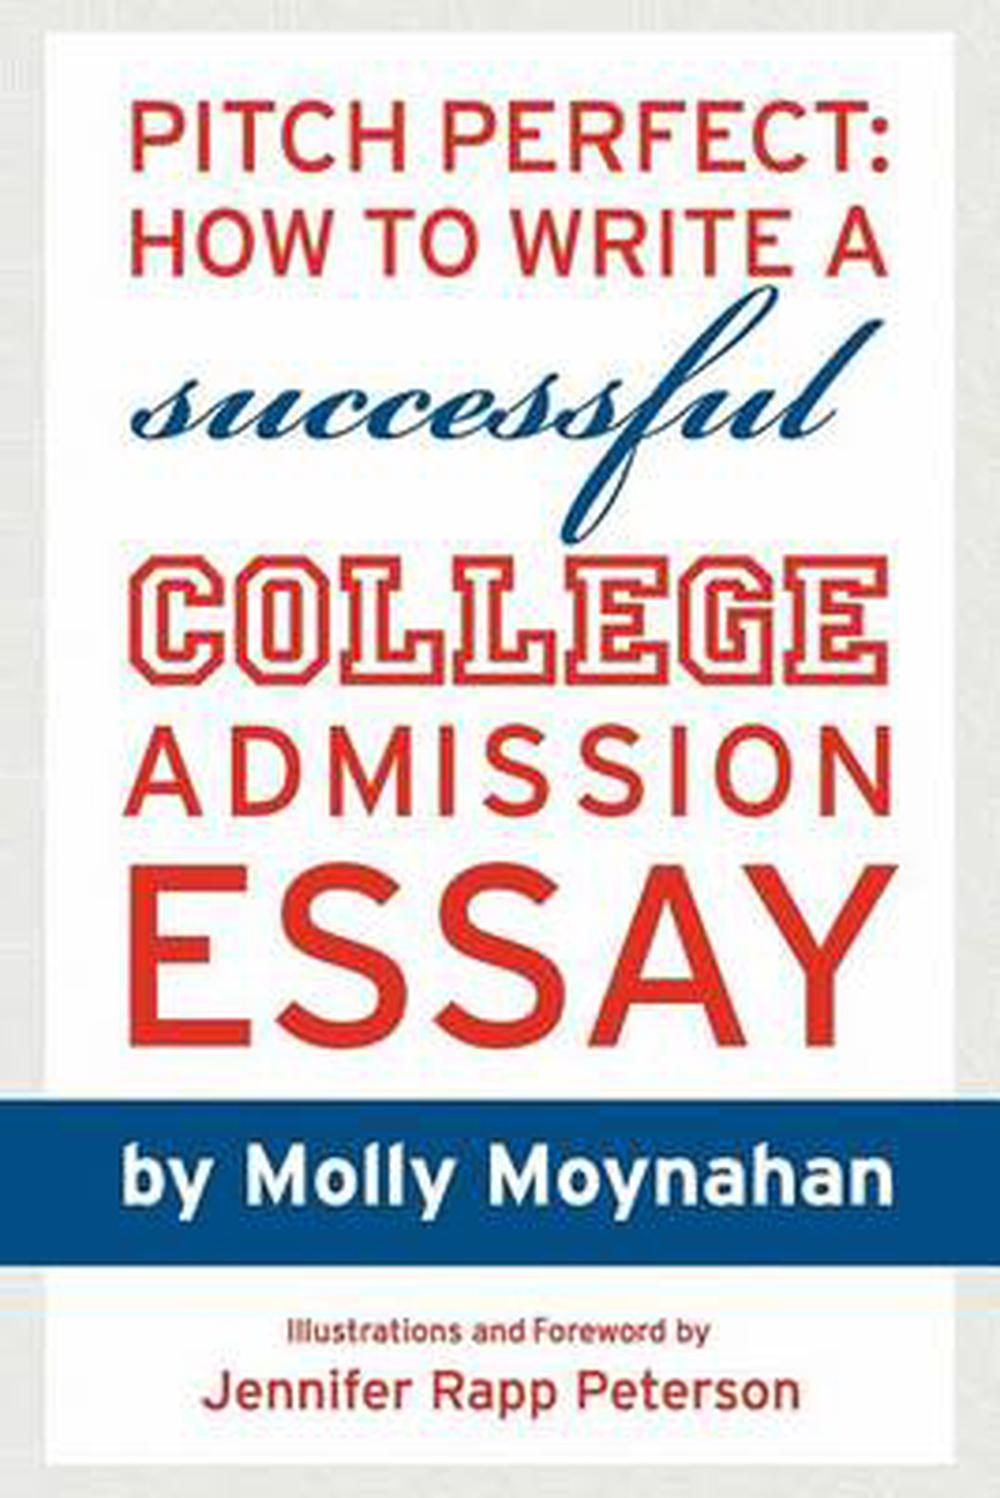 Essay writing service college admission perfect